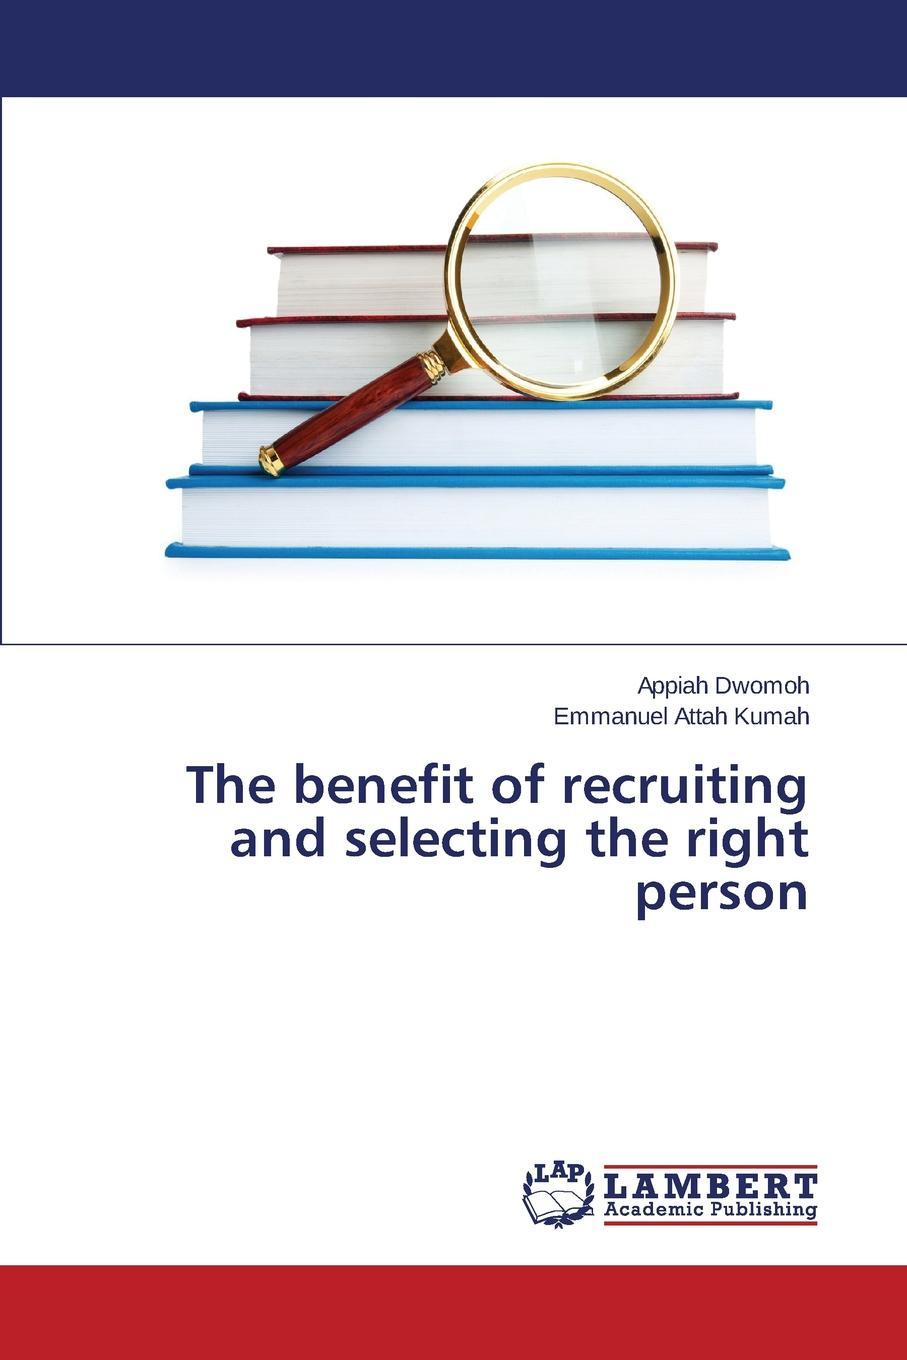 Dwomoh Appiah, Attah Kumah Emmanuel The benefit of recruiting and selecting the right person journey recruitment